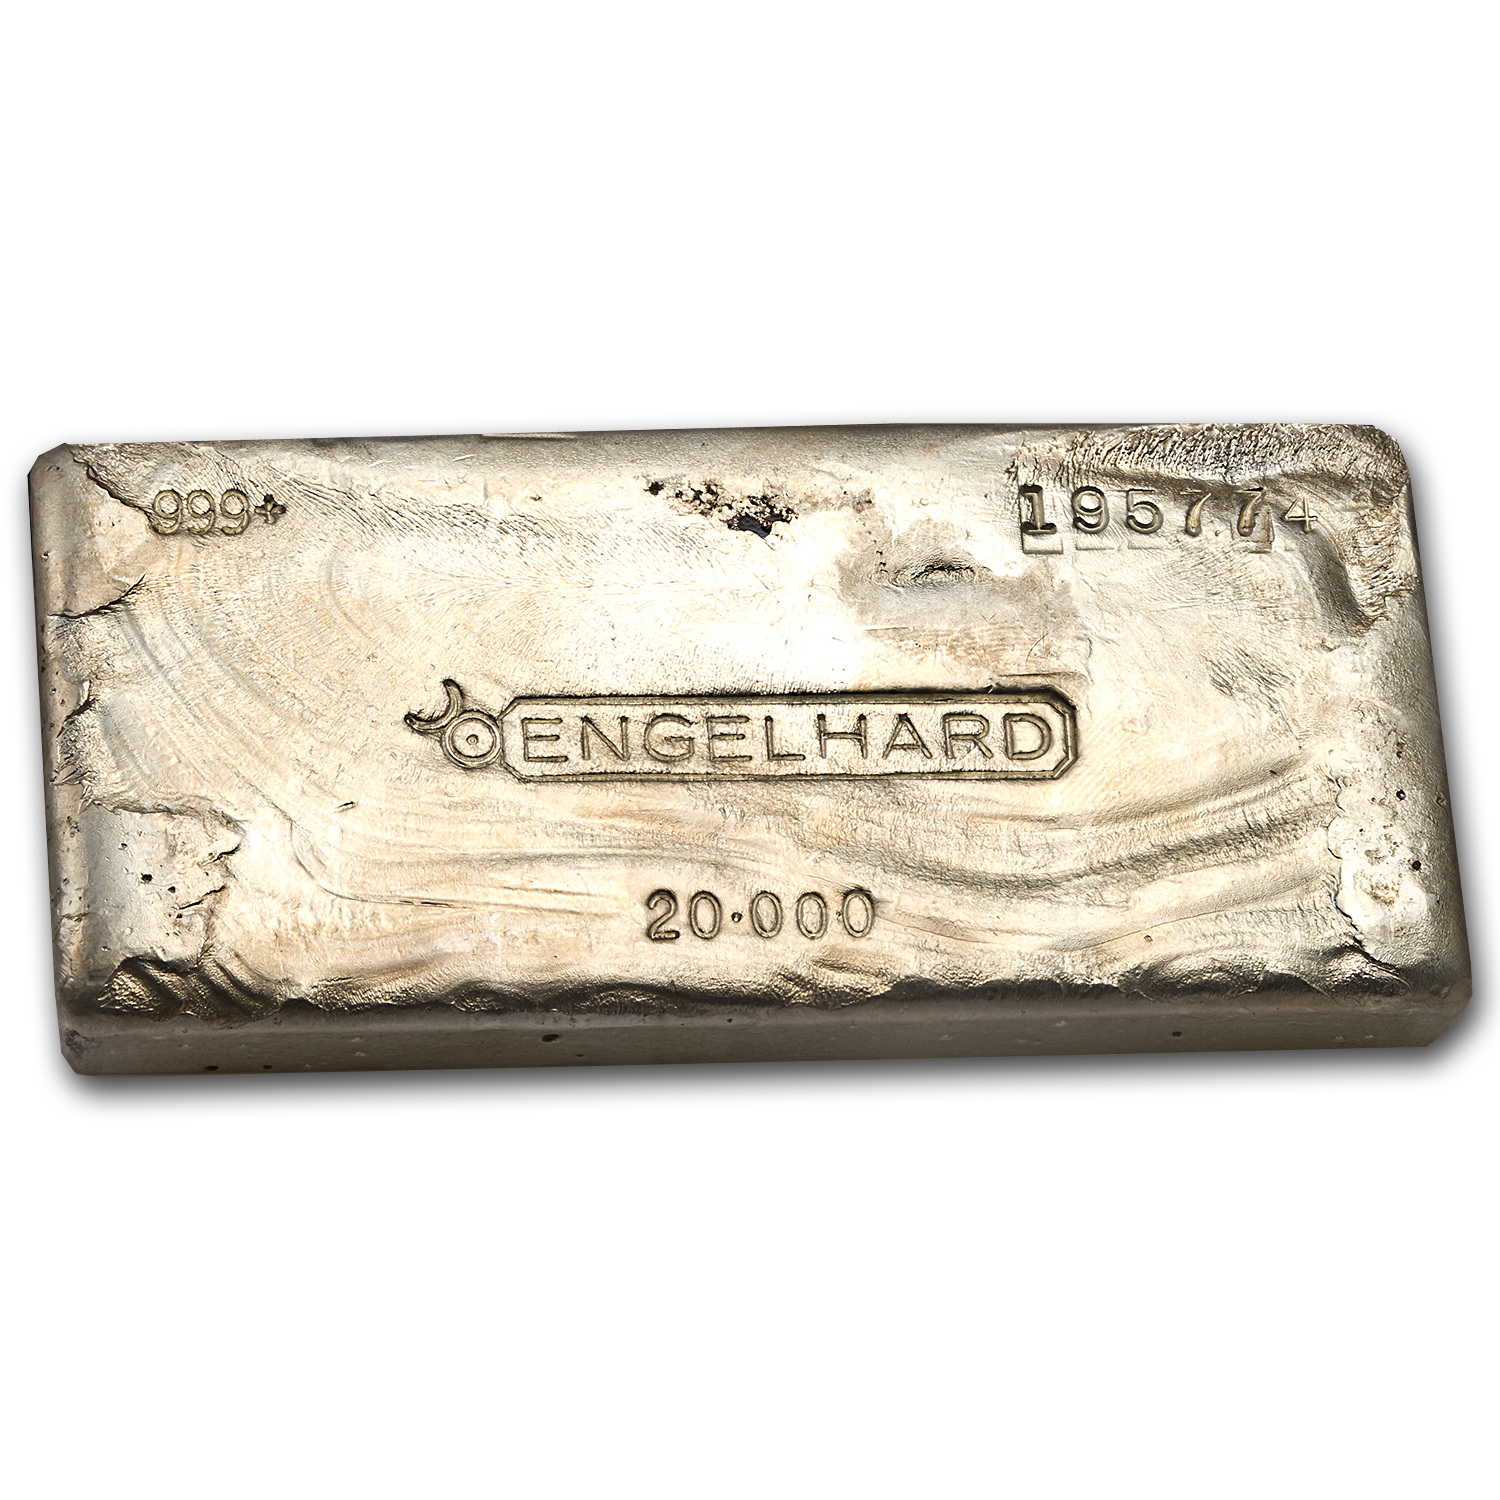 20 oz Silver Bar - Engelhard (Cast, Poured, Bull Logo)